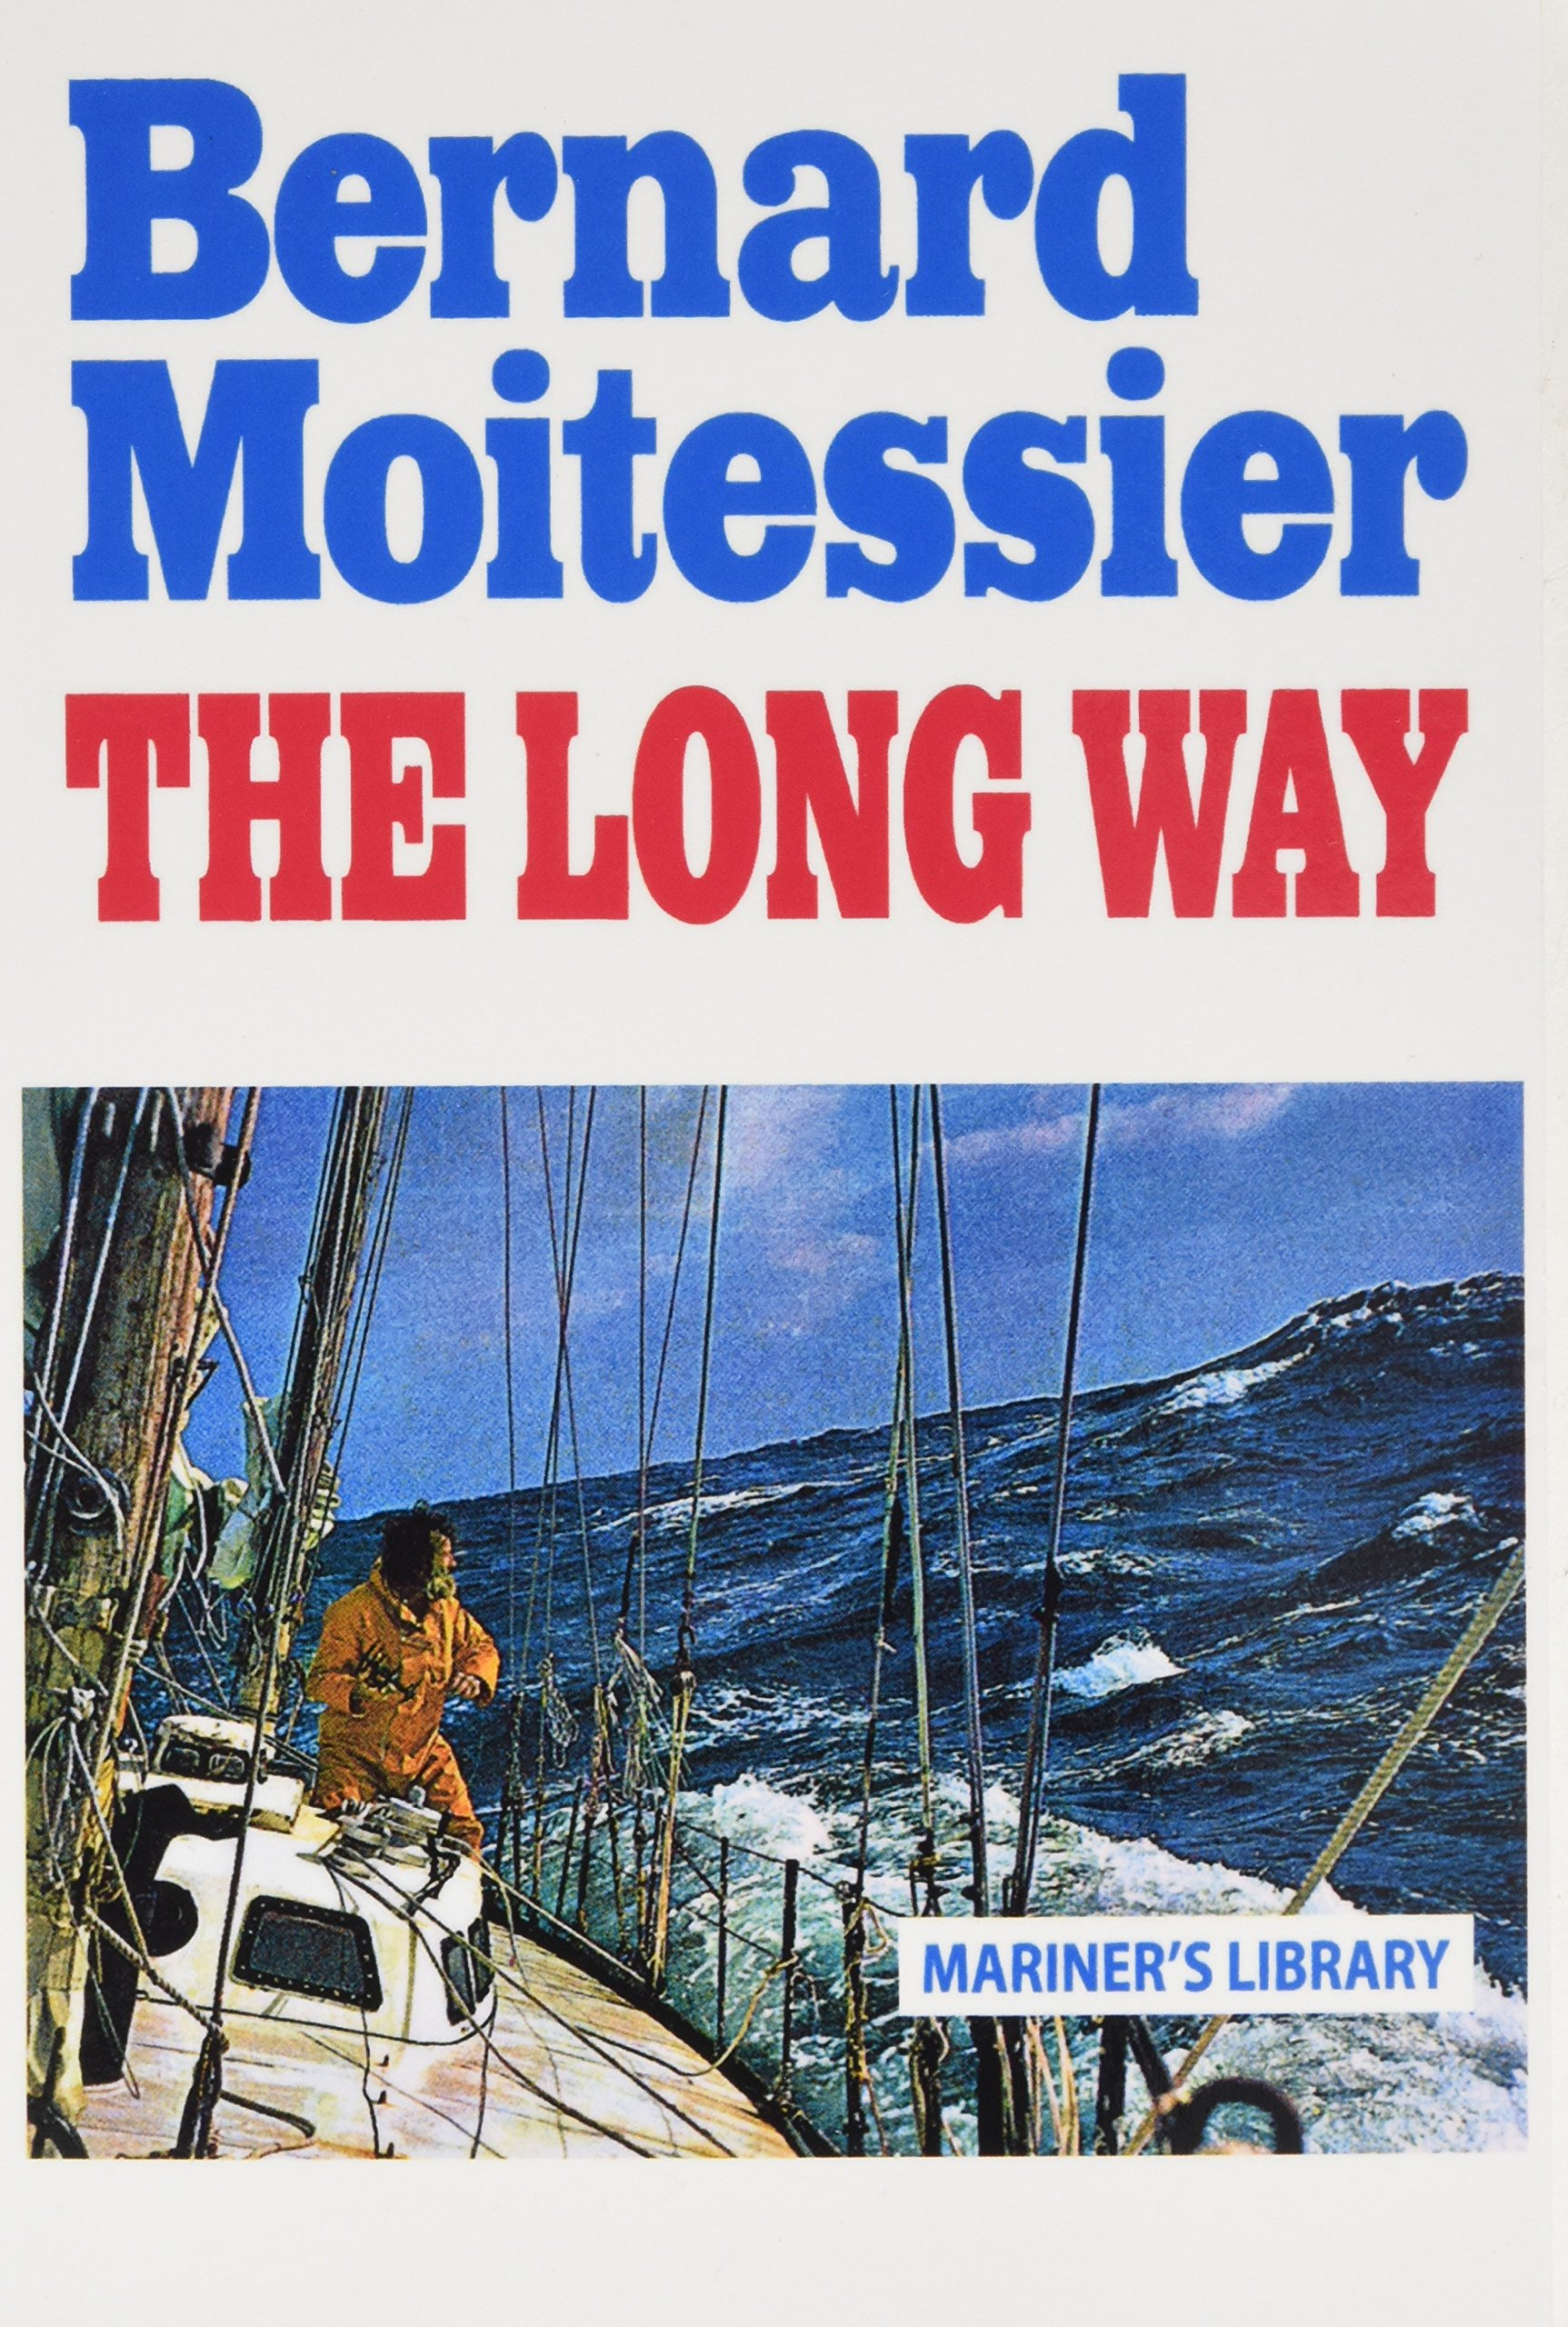 The long way bernard moitessier william rodarmor 8601404493195 the long way bernard moitessier william rodarmor 8601404493195 amazon books fandeluxe Image collections